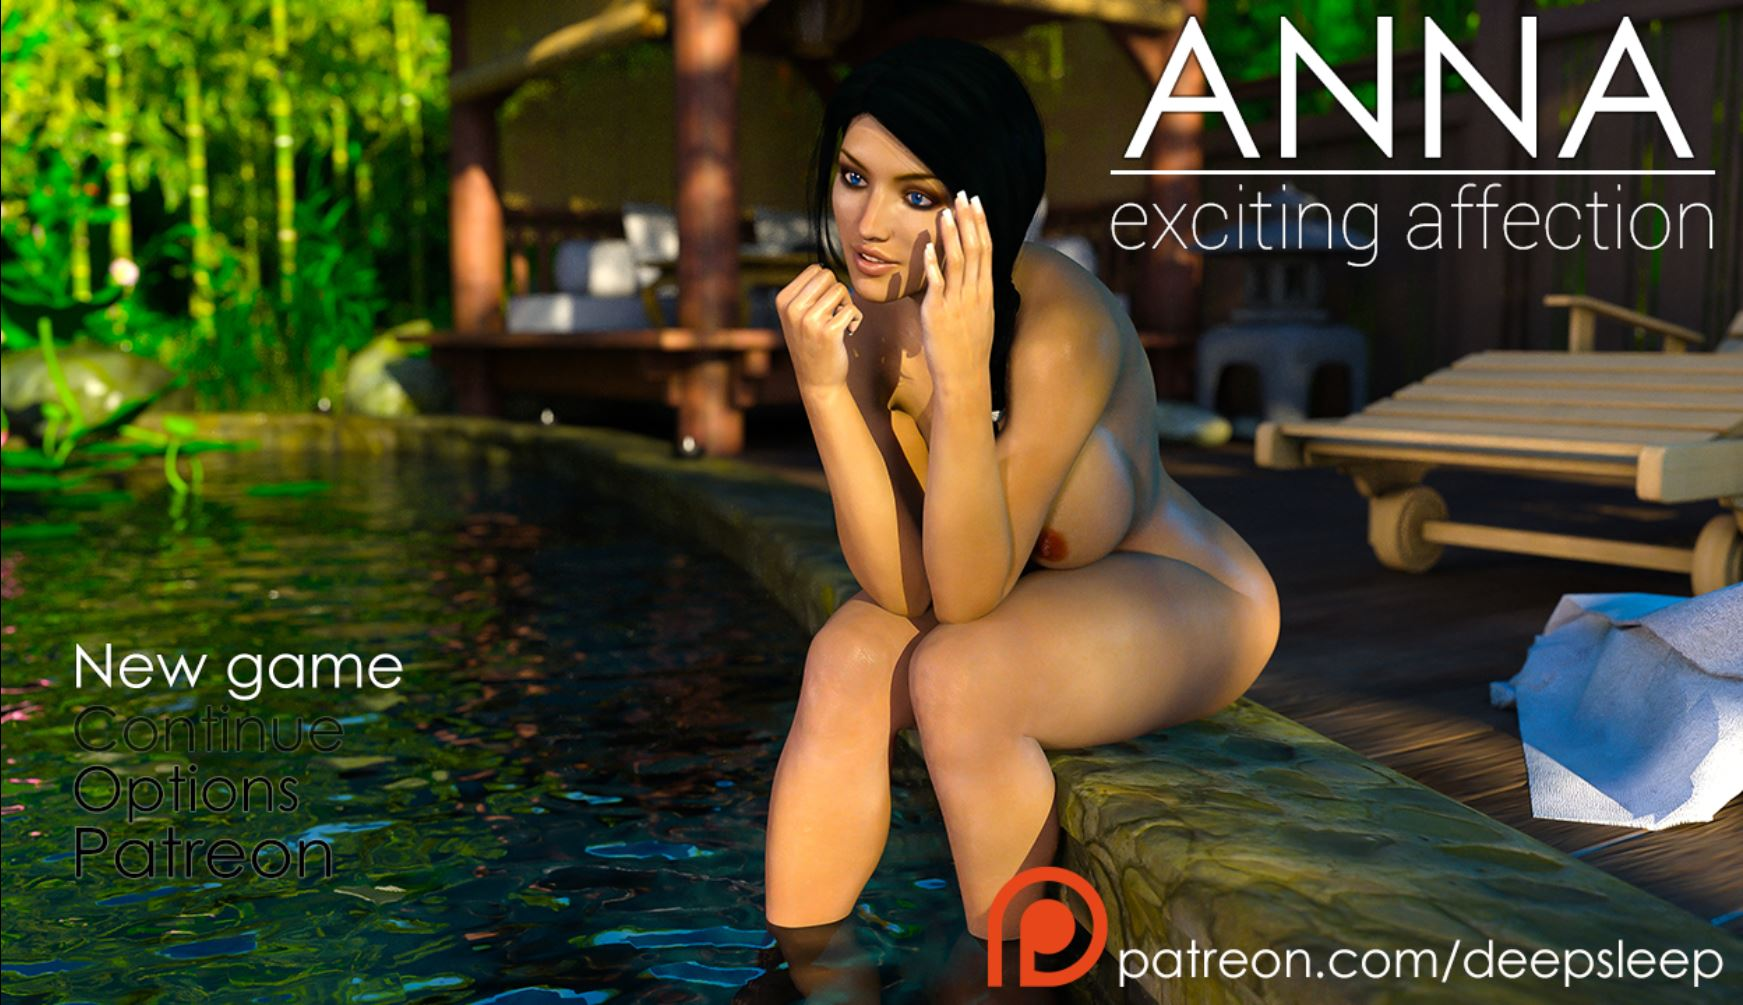 Anna - Exciting Affection - Version 0.2 Fixed